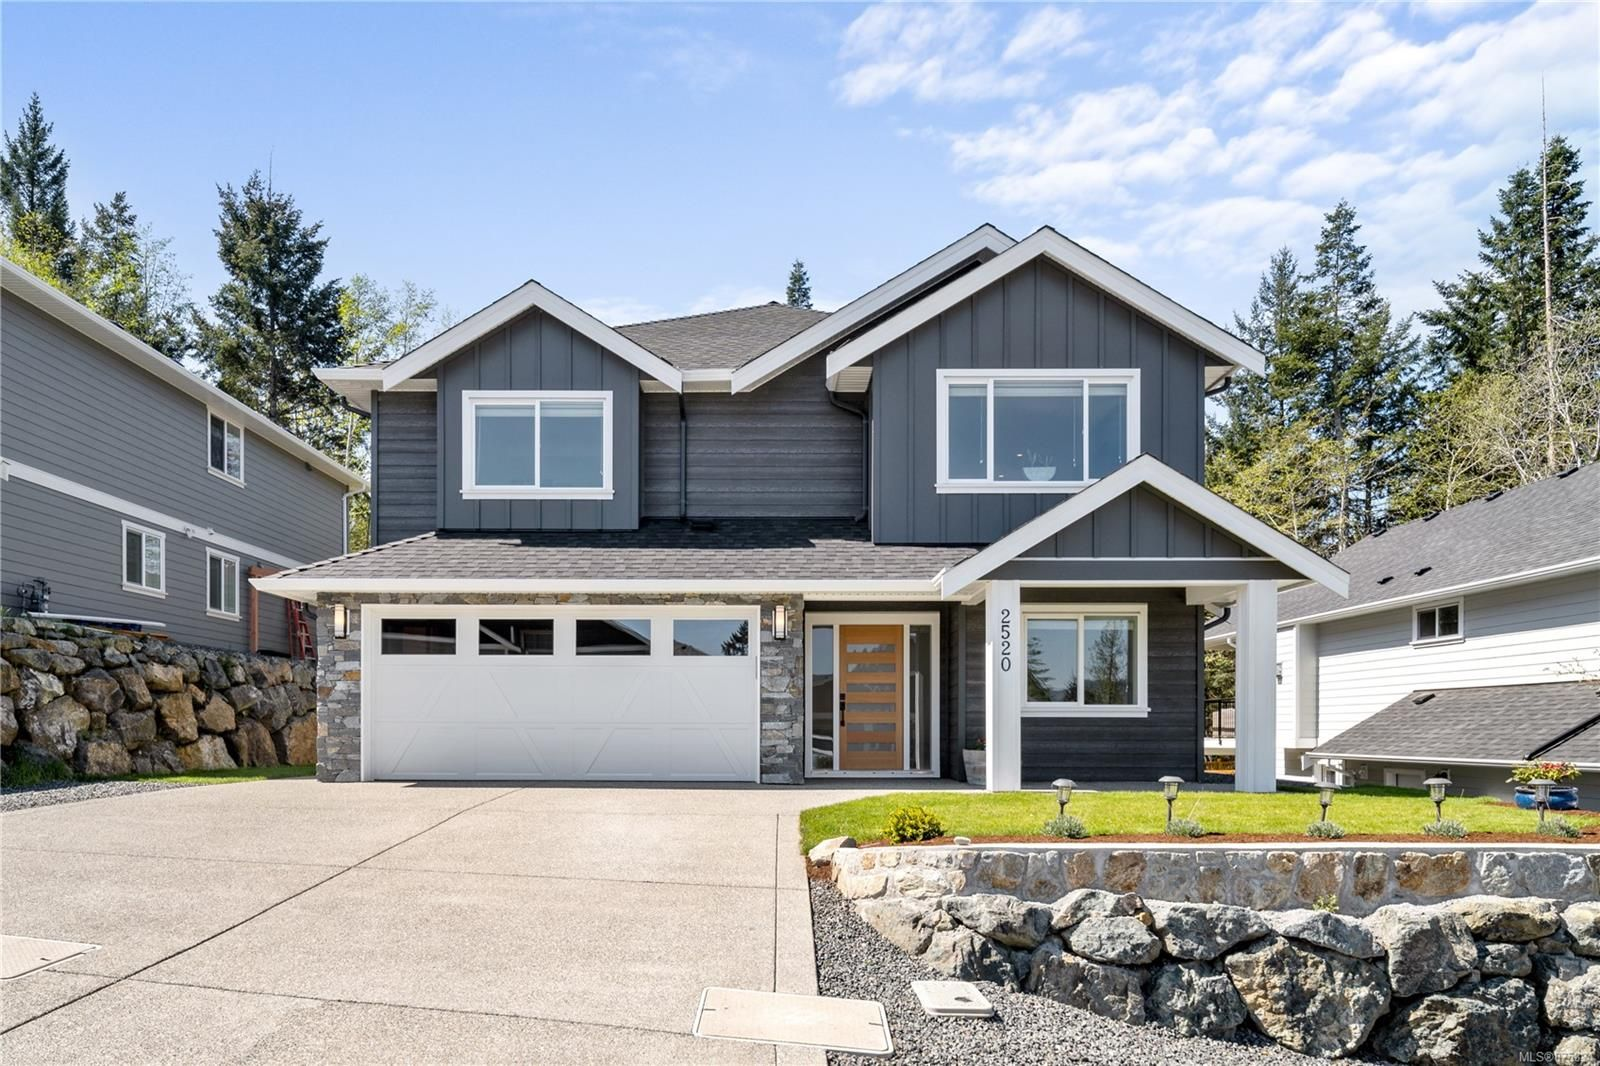 Main Photo: 2520 West Trail Crt in : Sk Broomhill House for sale (Sooke)  : MLS®# 875824